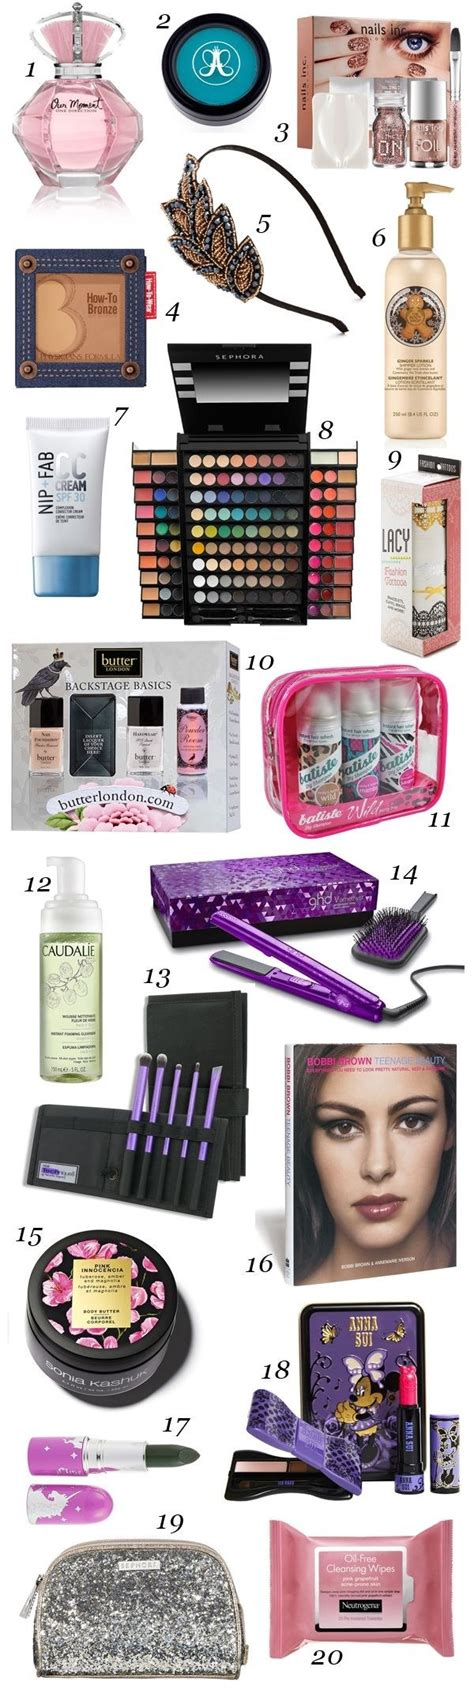 what to get a 16 year old girl for christmas eknom jo